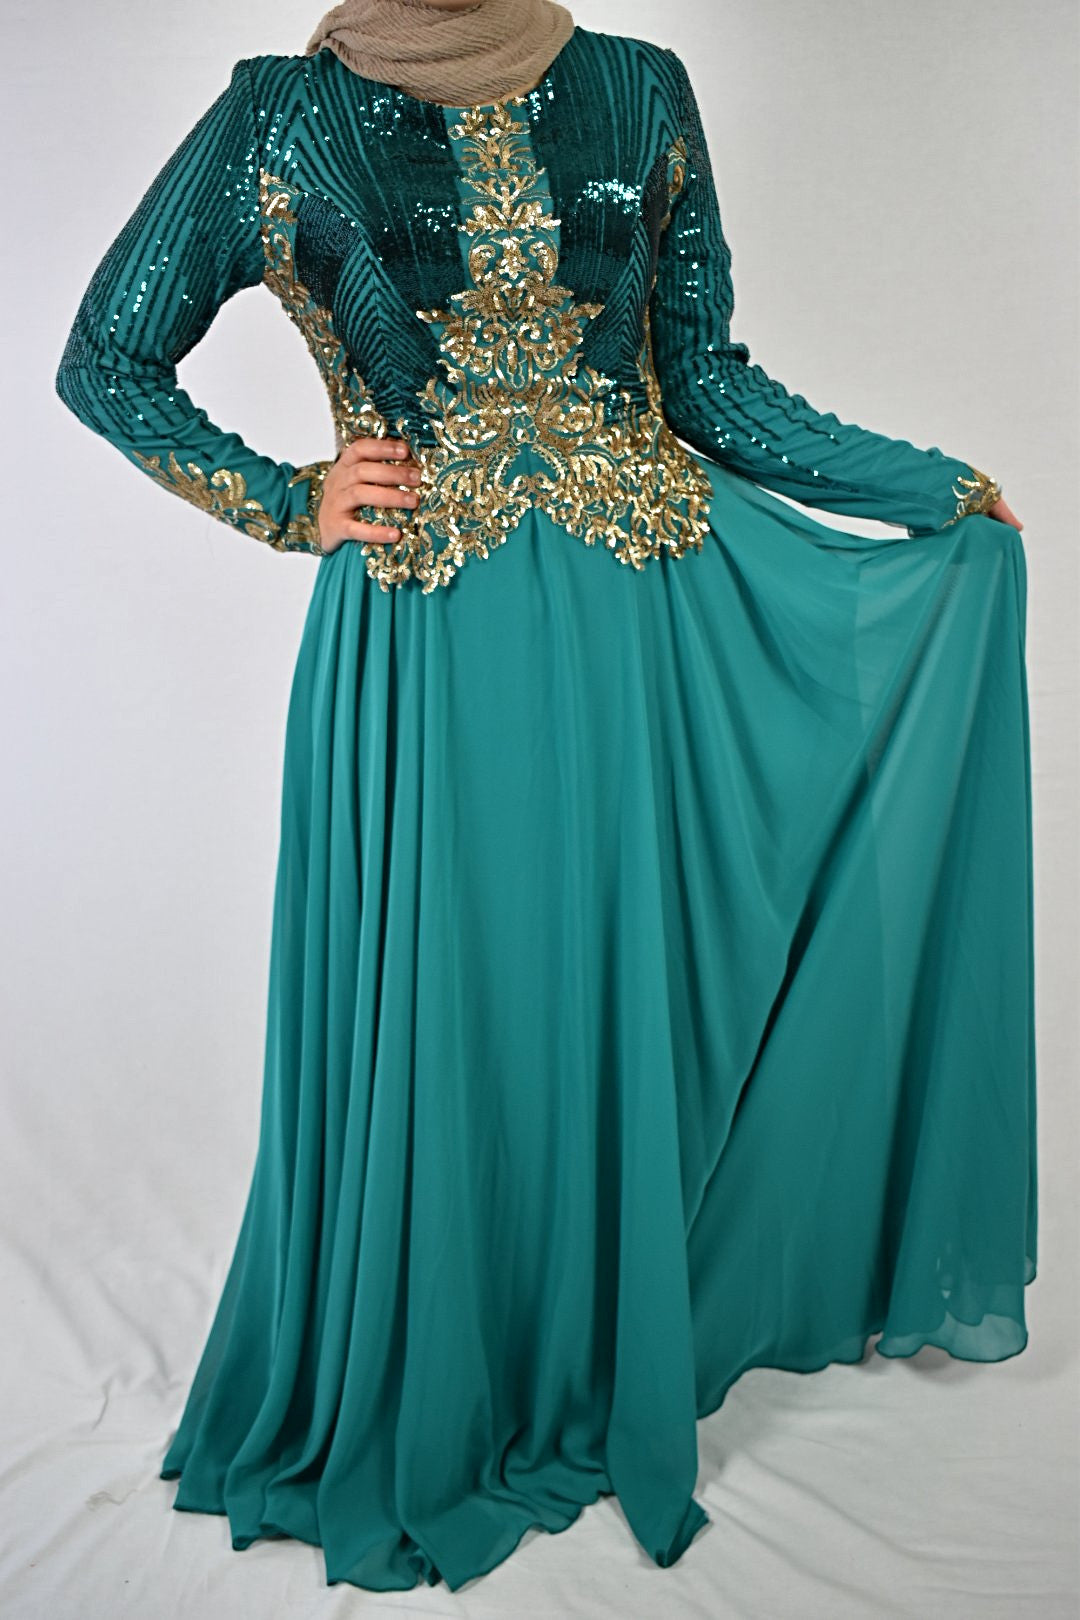 Elegant Evening Dress - Turquoise